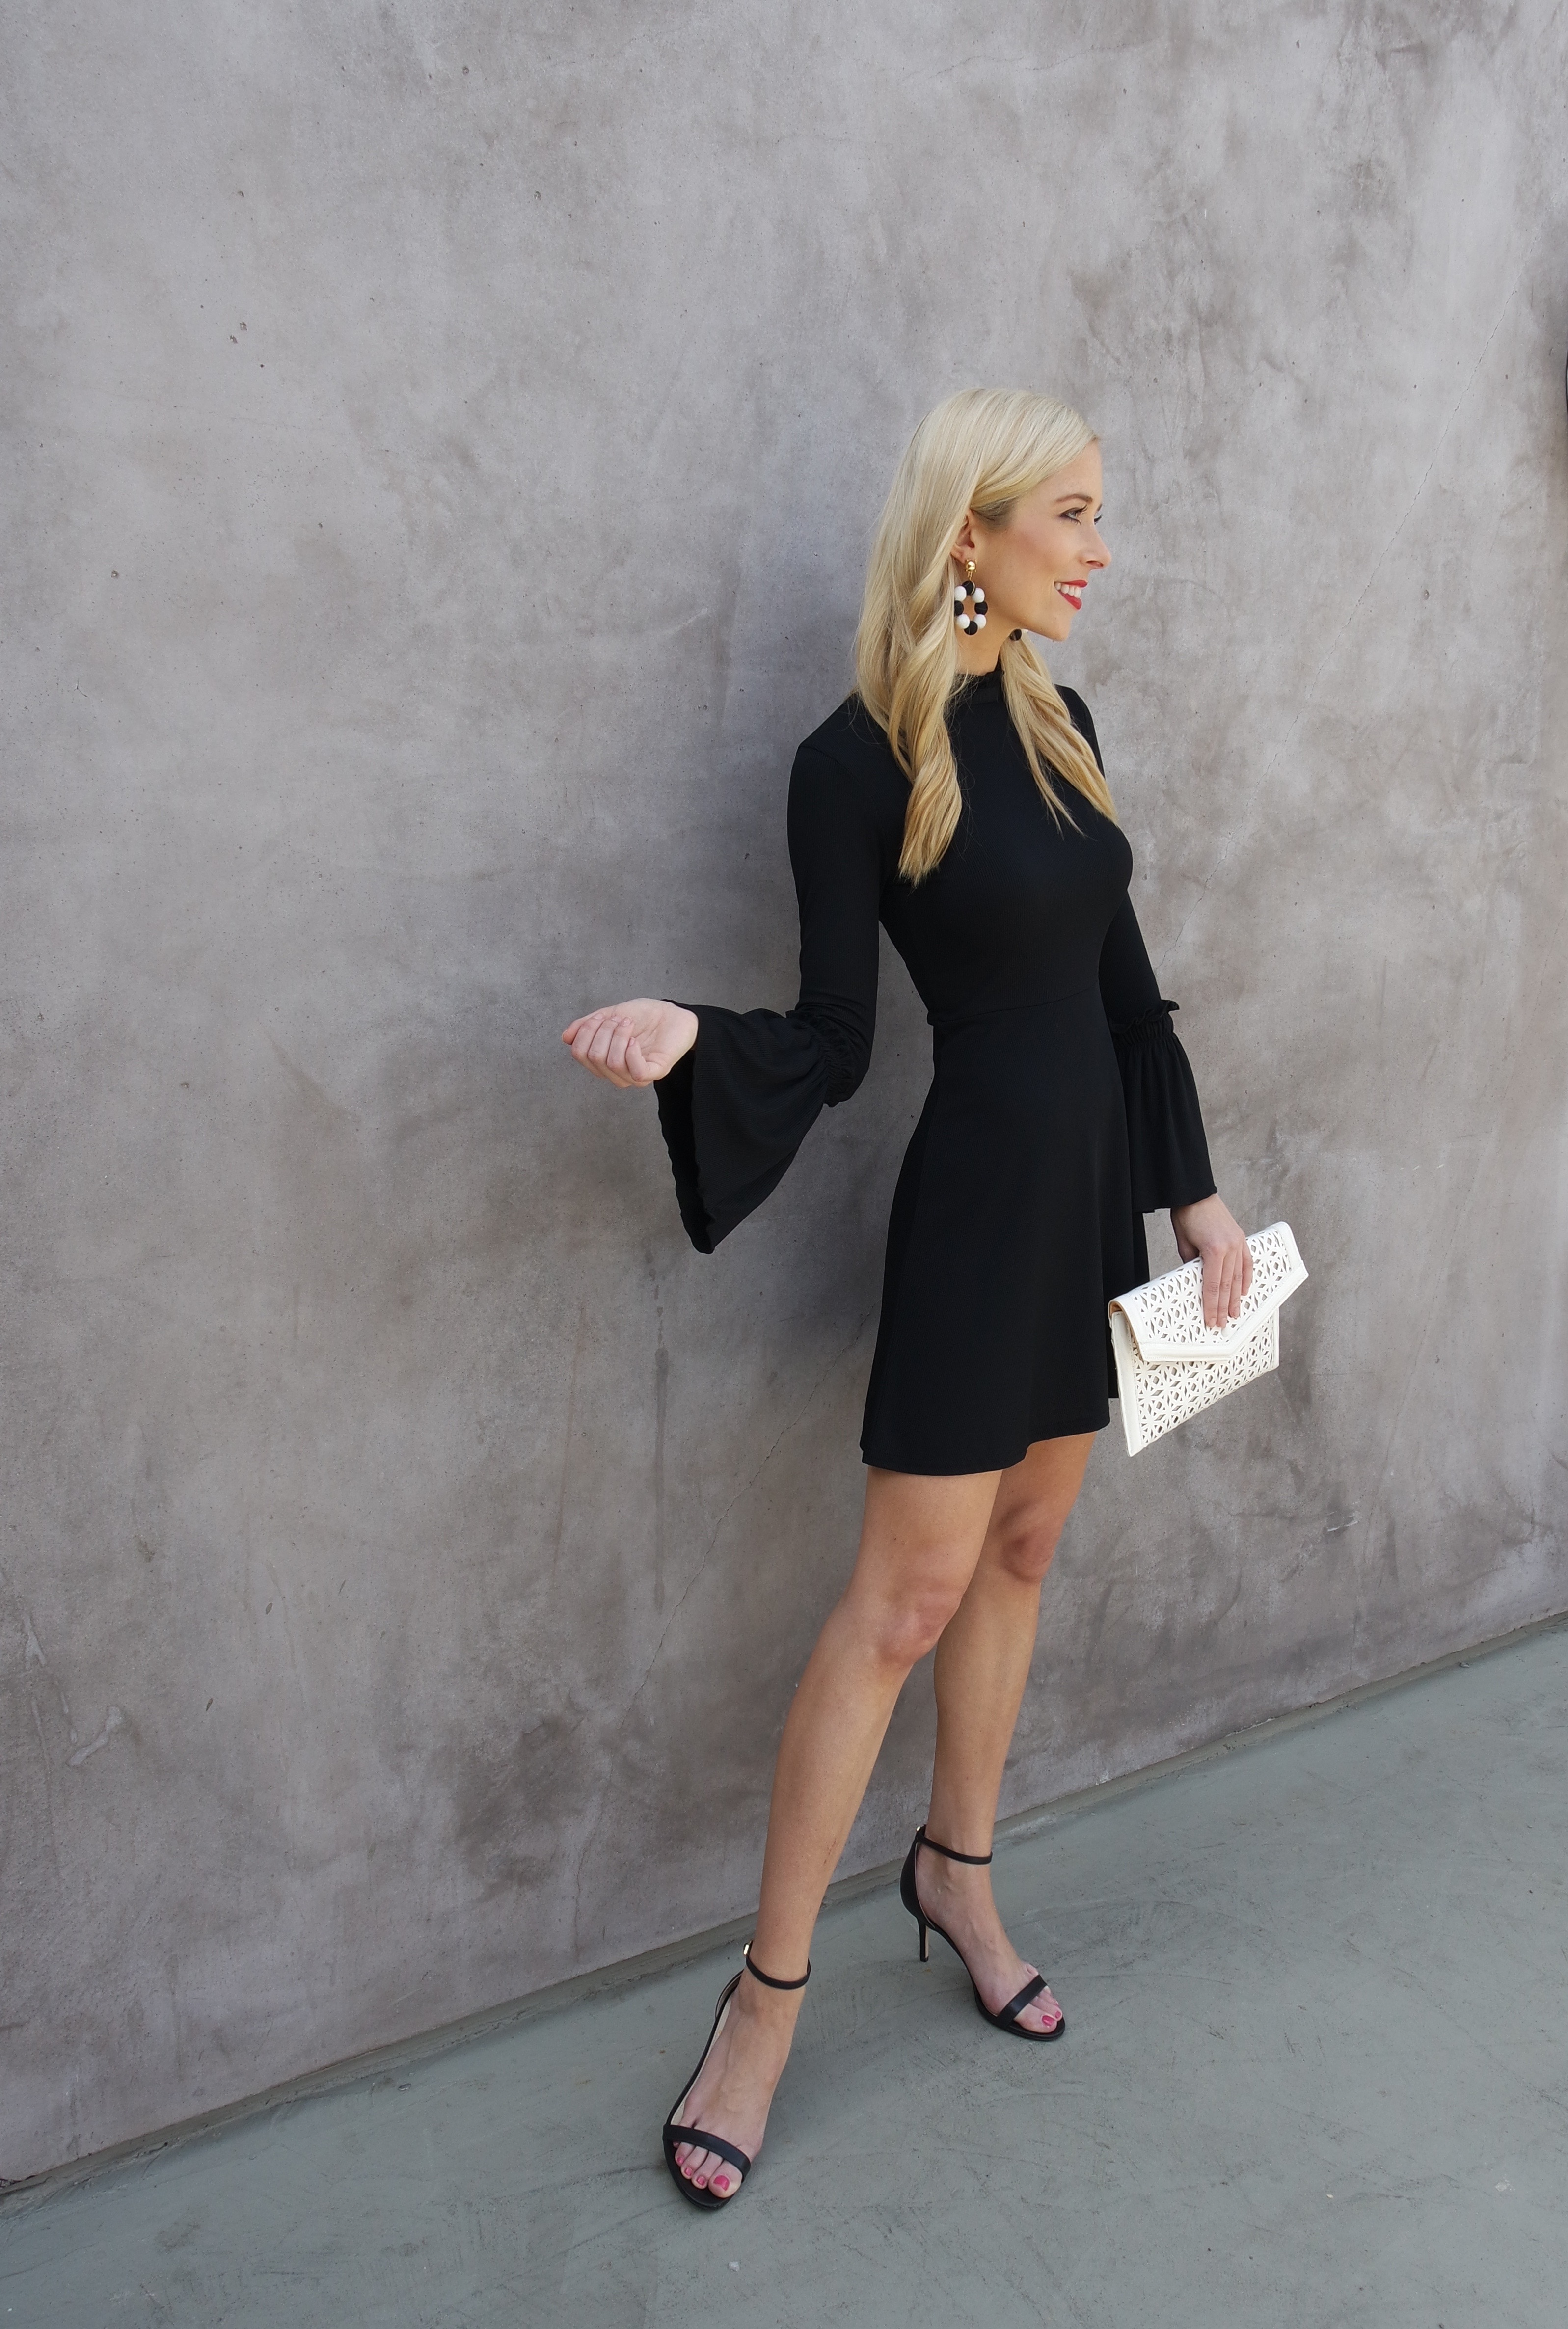 How I love to style Black and White